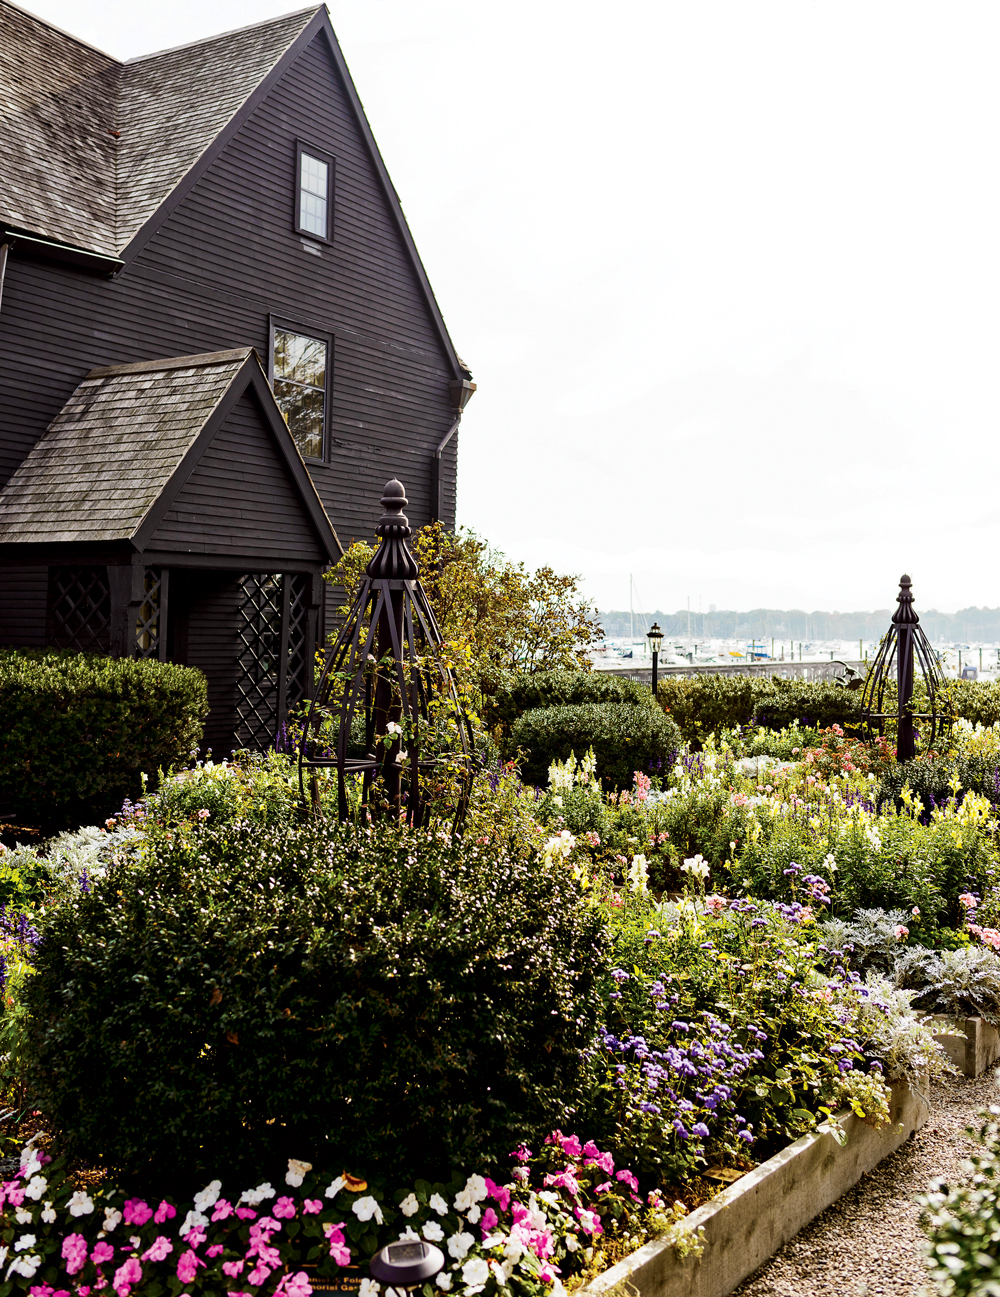 Salem, Massachusetts | Could You Live Here? - New England Today